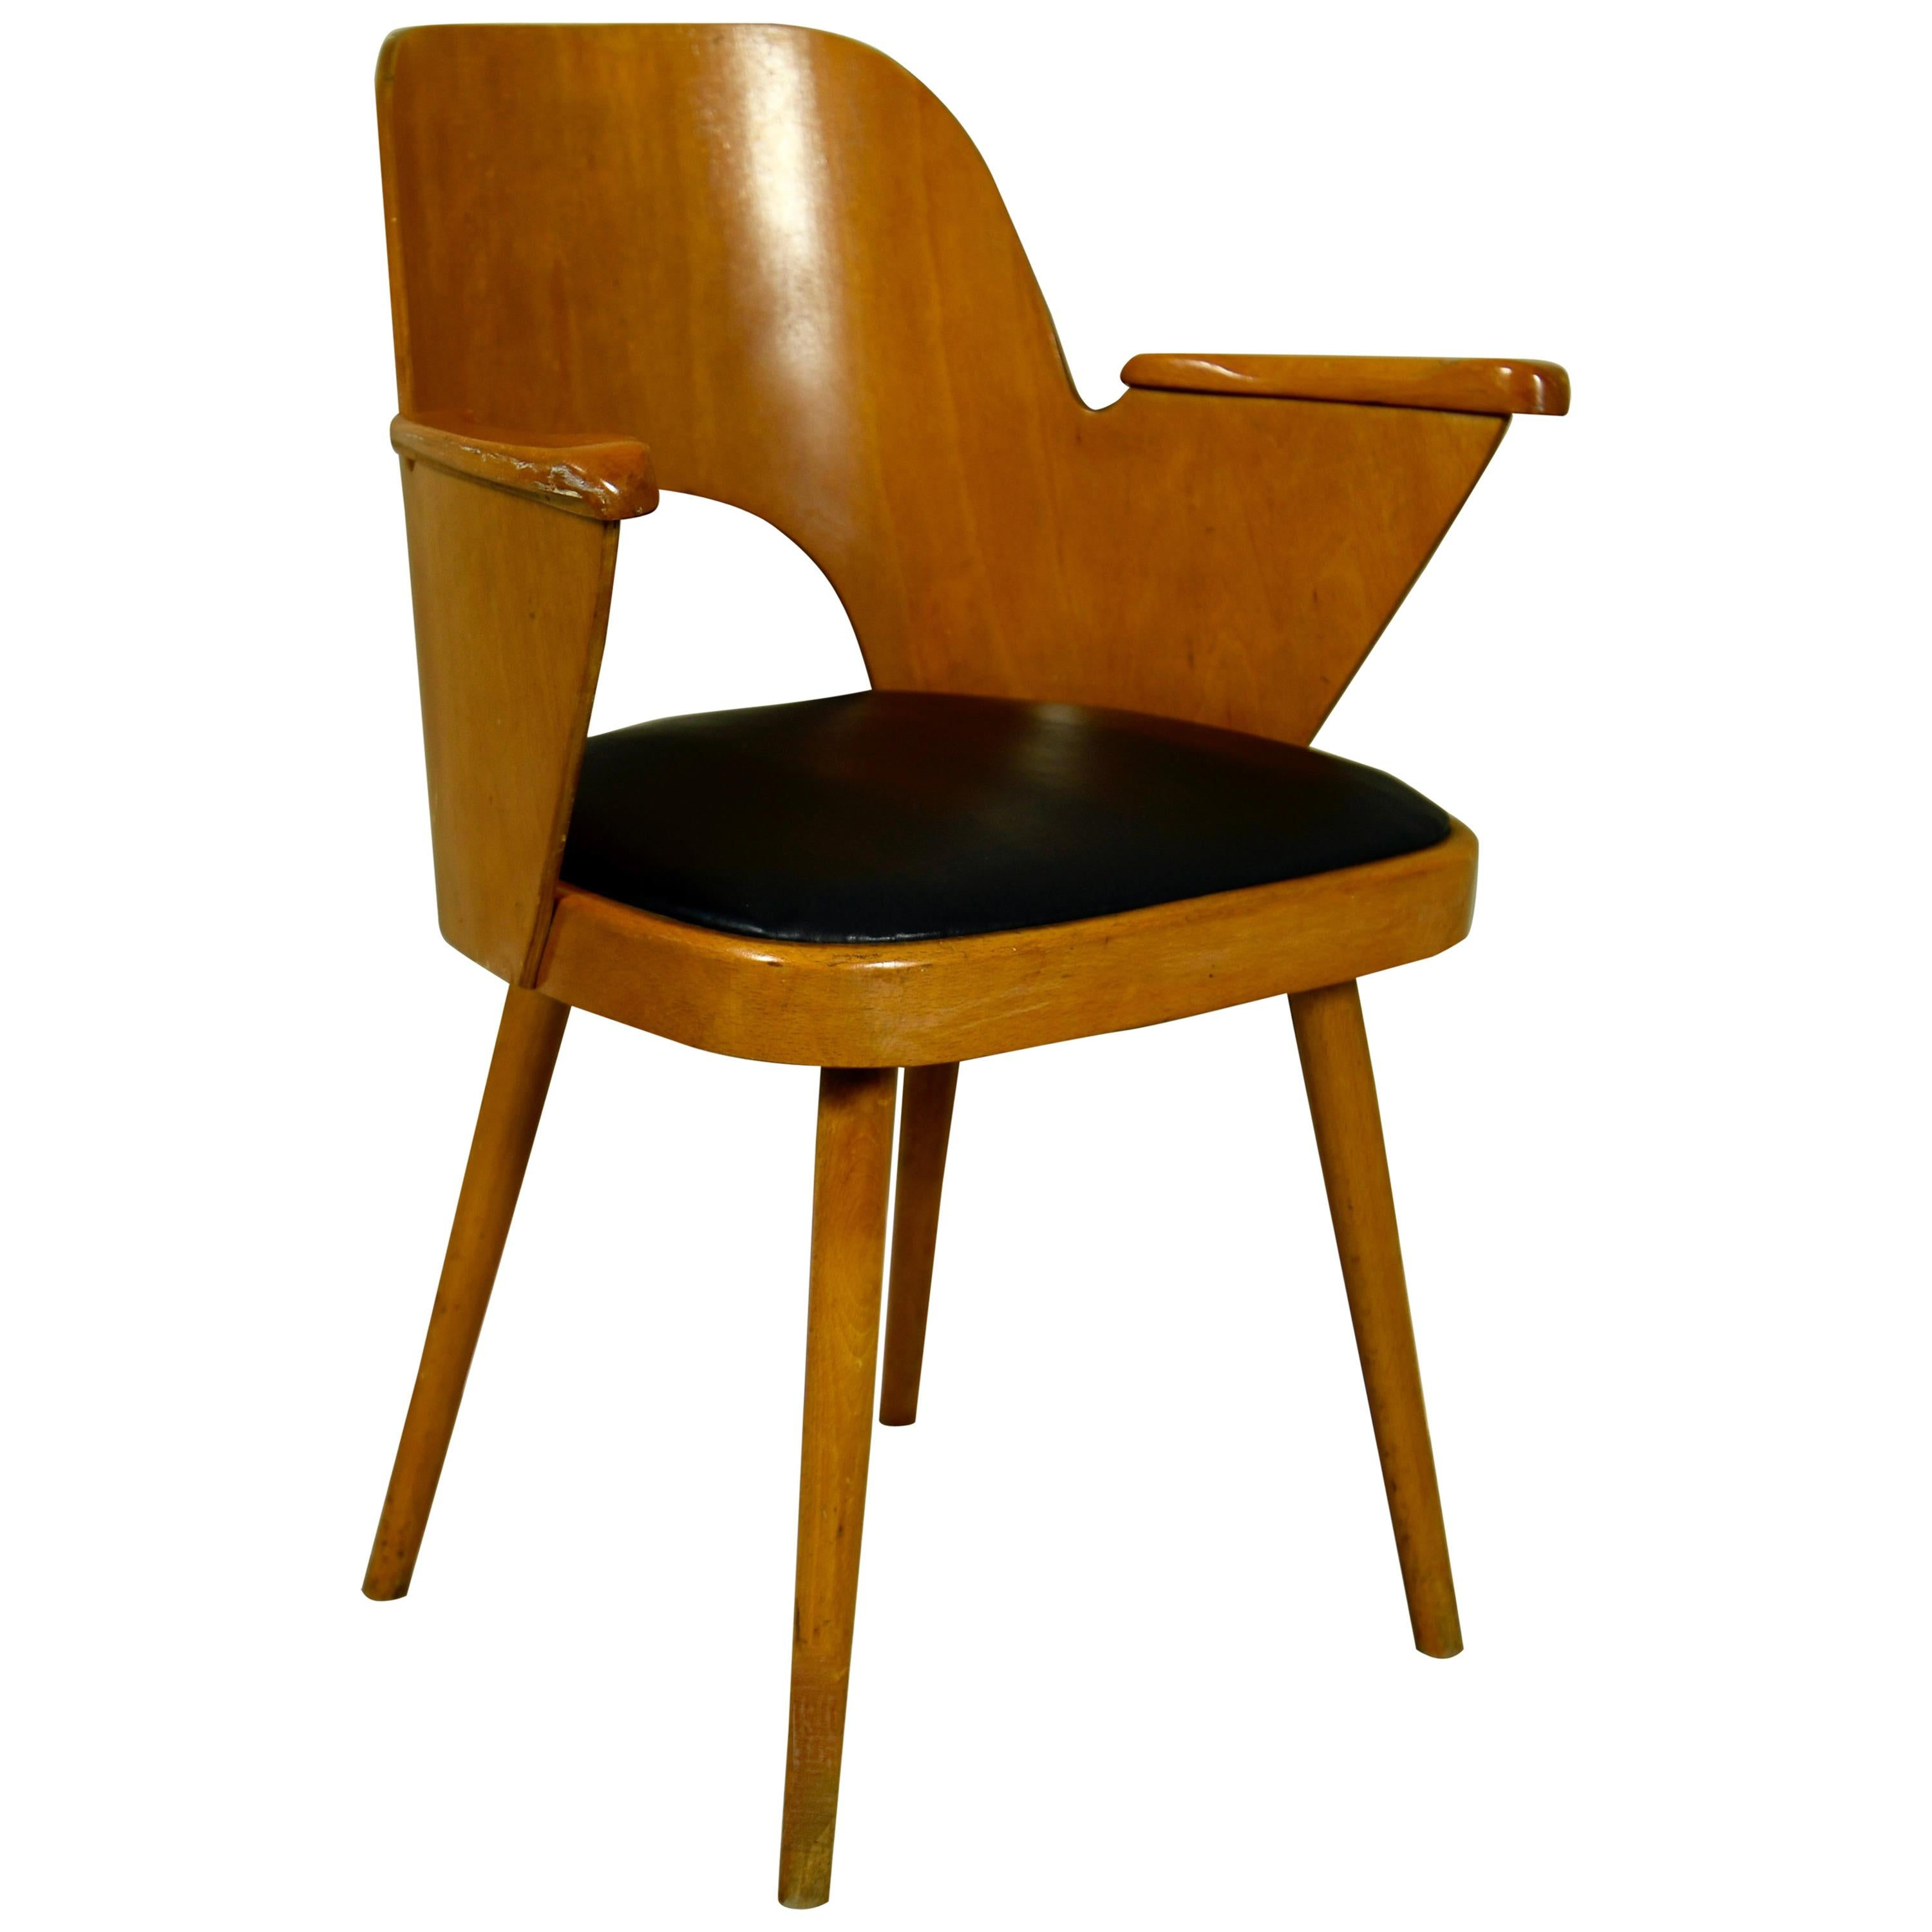 Oswald Haerdtl Bent Plywood Barrel Chair For Sale  sc 1 st  1stDibs & Oswald Haerdtl Bent Plywood Barrel Chair For Sale at 1stdibs